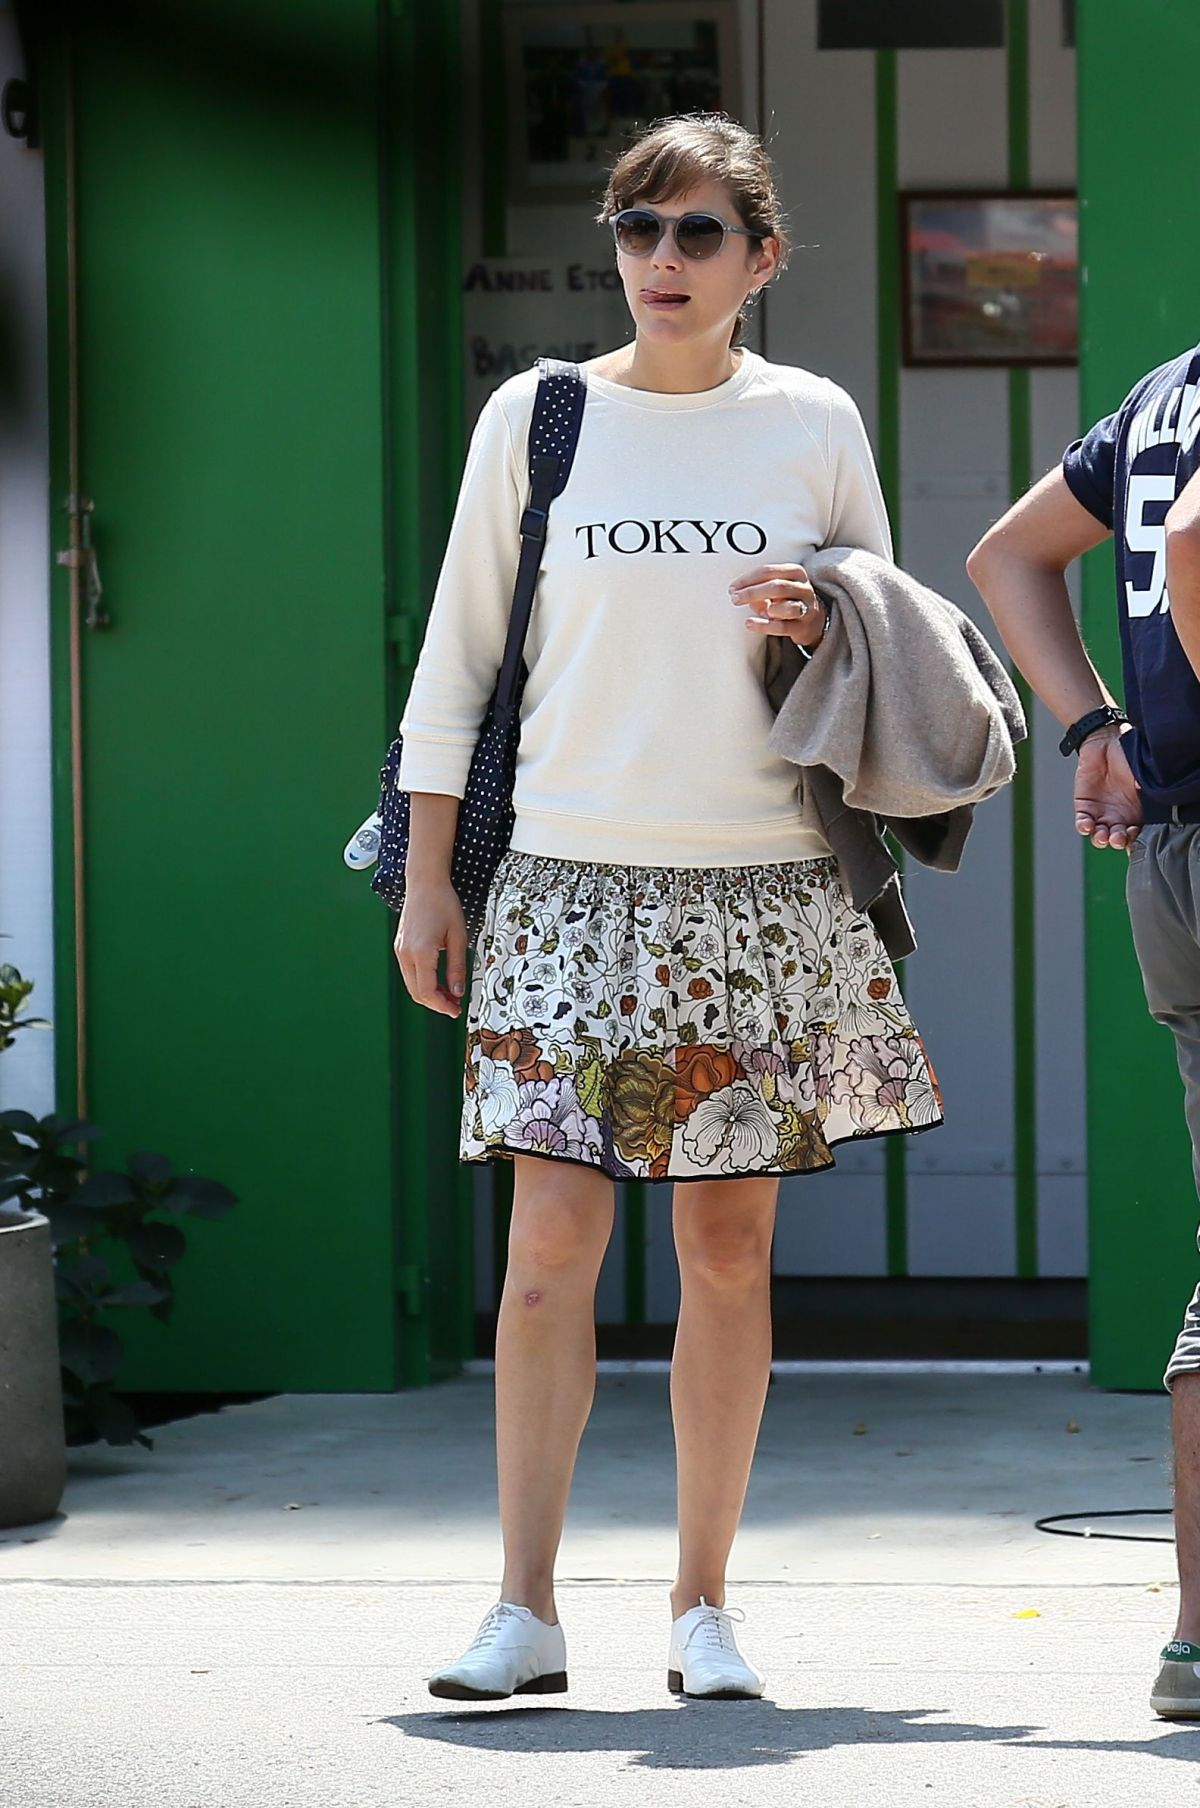 http://www.celebzz.com/wp-content/uploads/2014/08/marion-cotillard-out-and-about-in-cap-ferret-_4.jpg